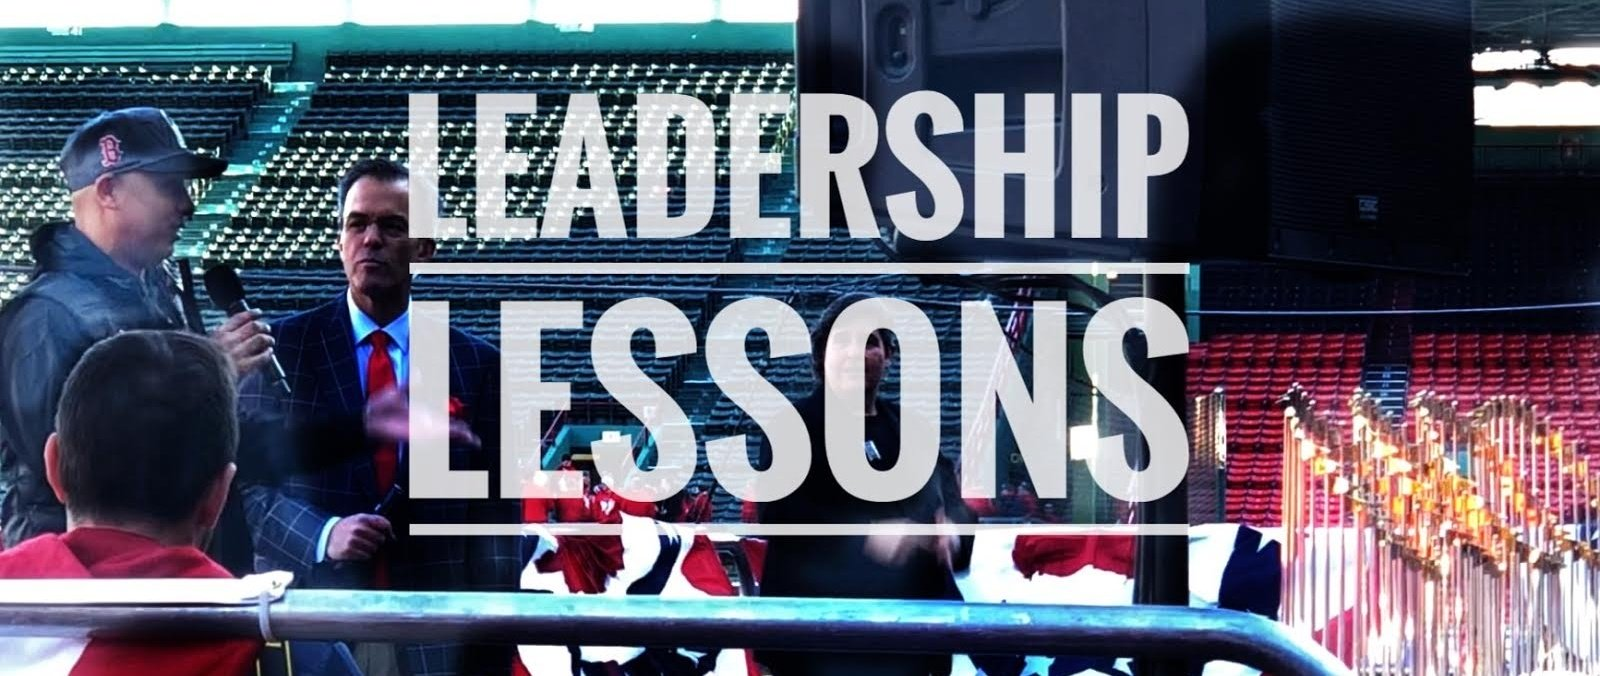 Leadership lessons Red Sox-163773-edited